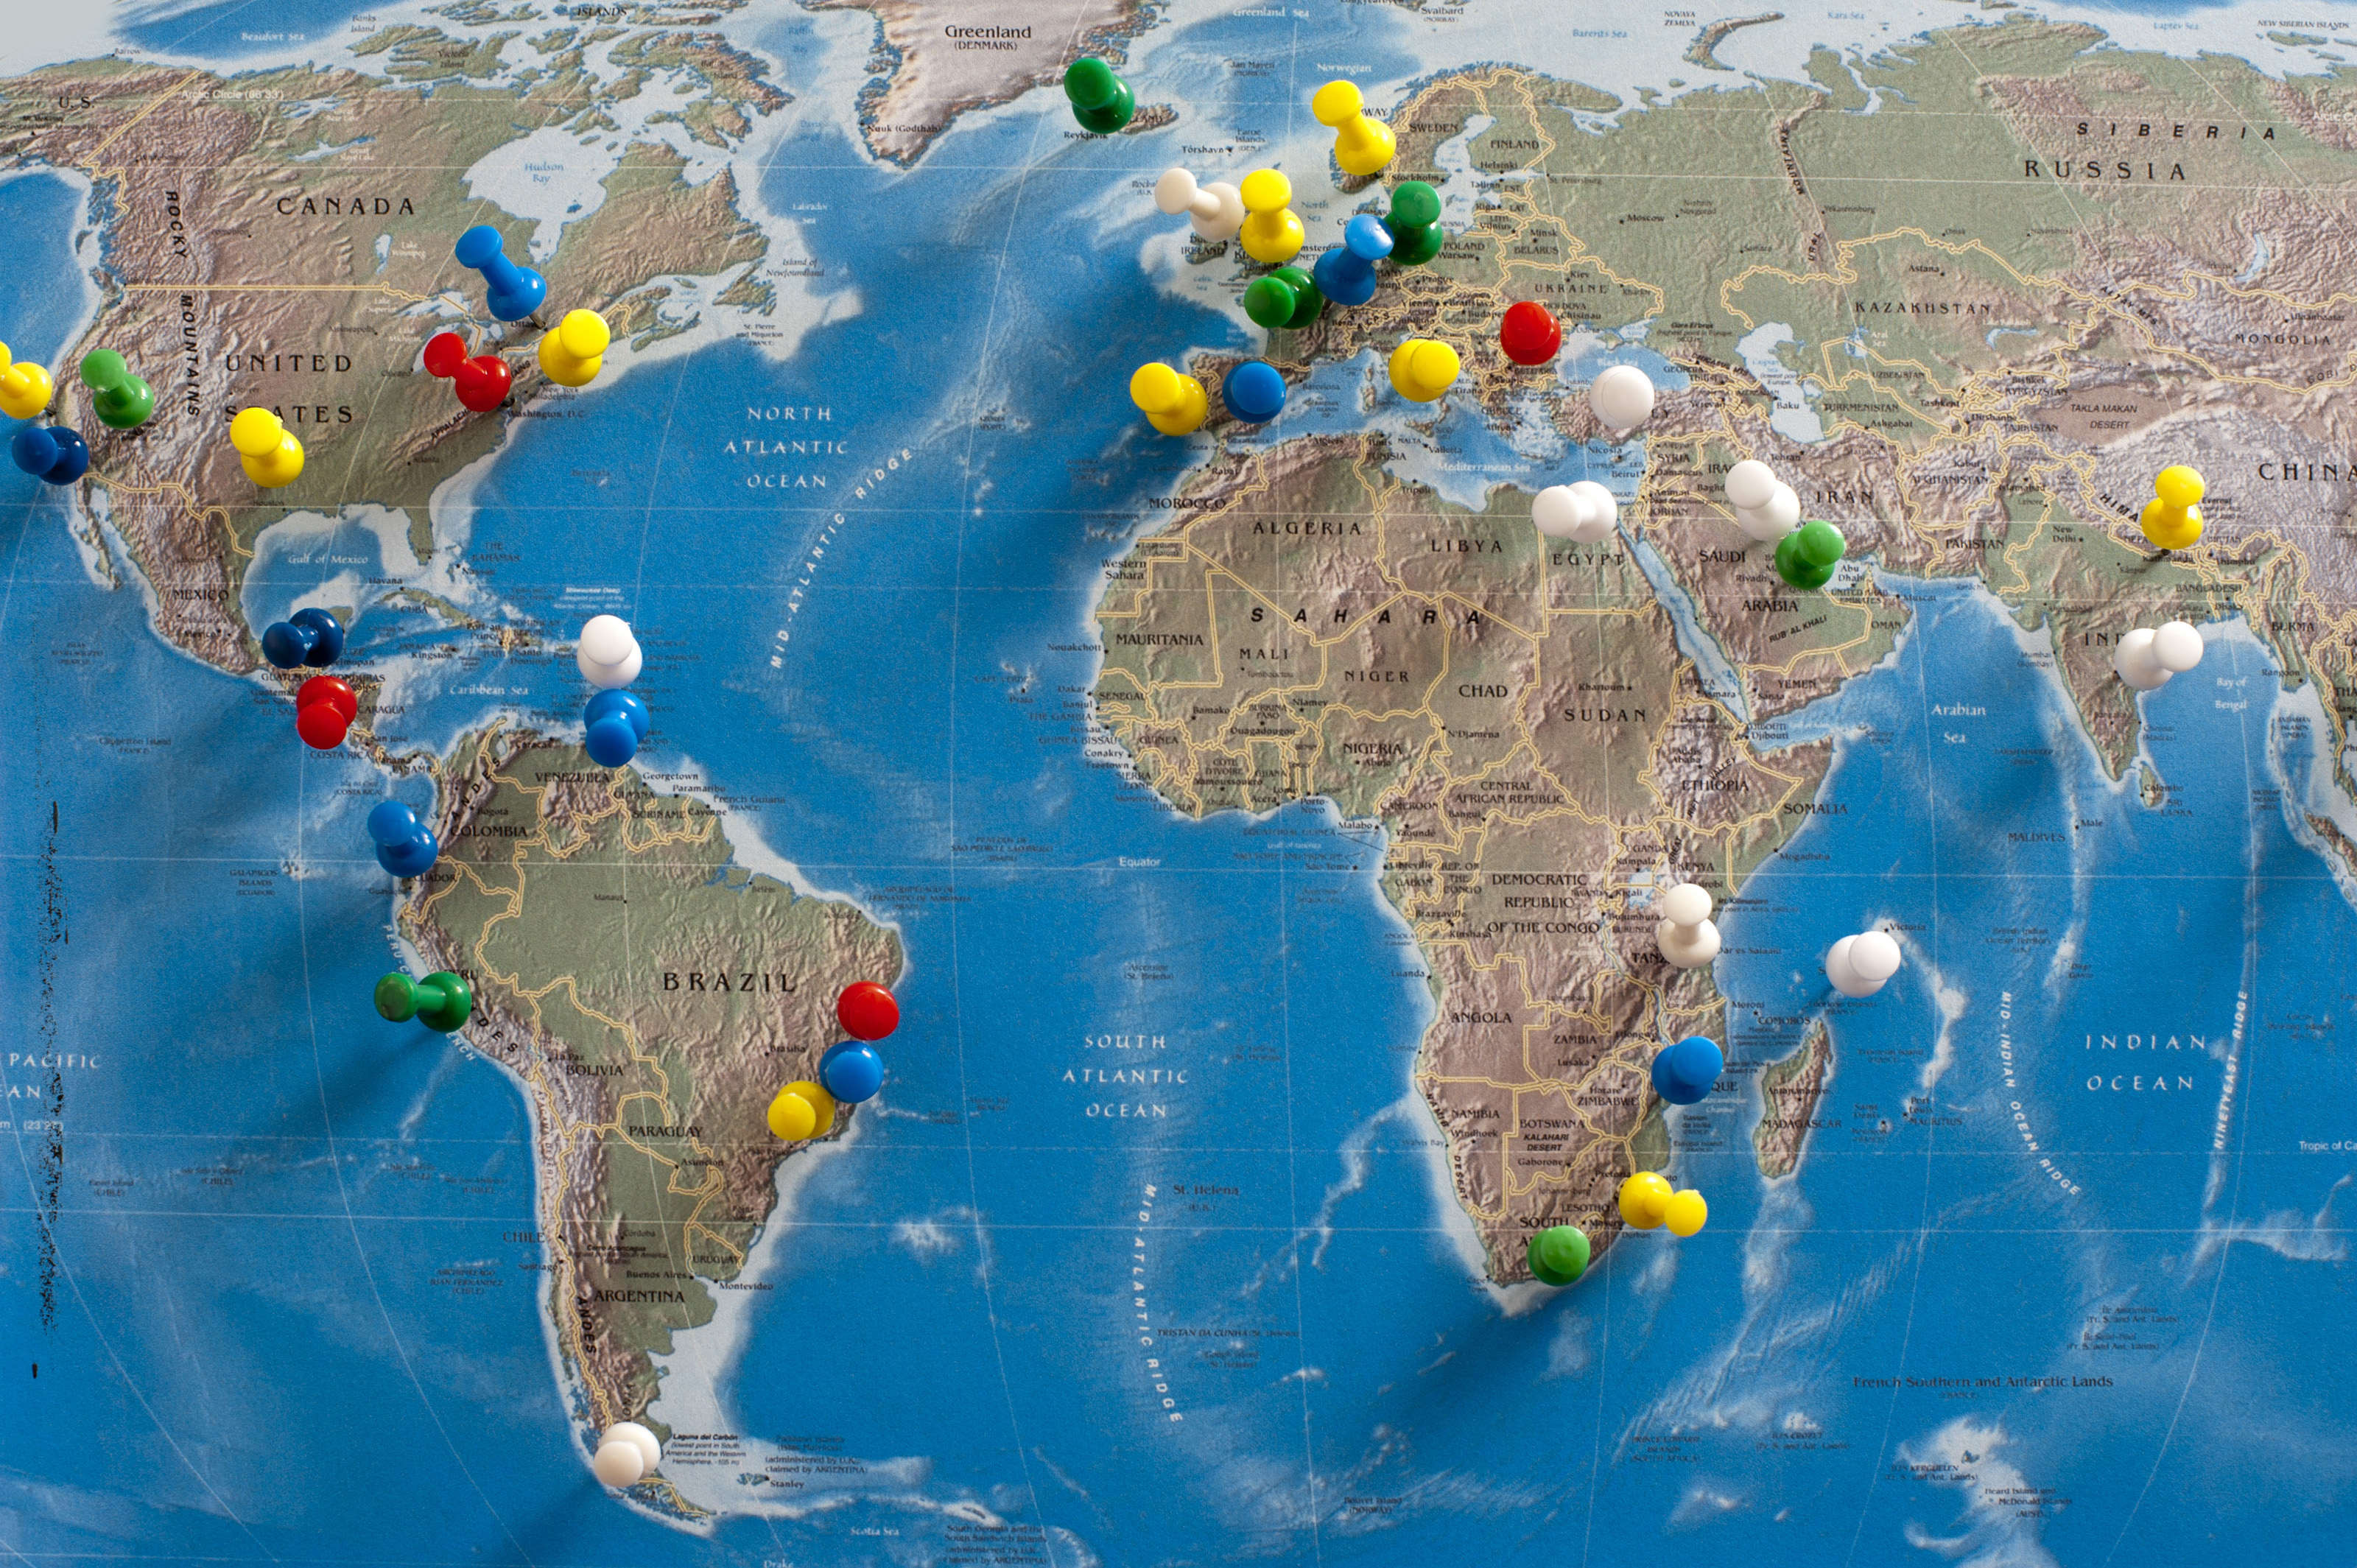 Free stock photo 10699 multi colored thumb tacks inserted in world multi colored thumb tacks inserted in various locations on wall map of the world gumiabroncs Gallery